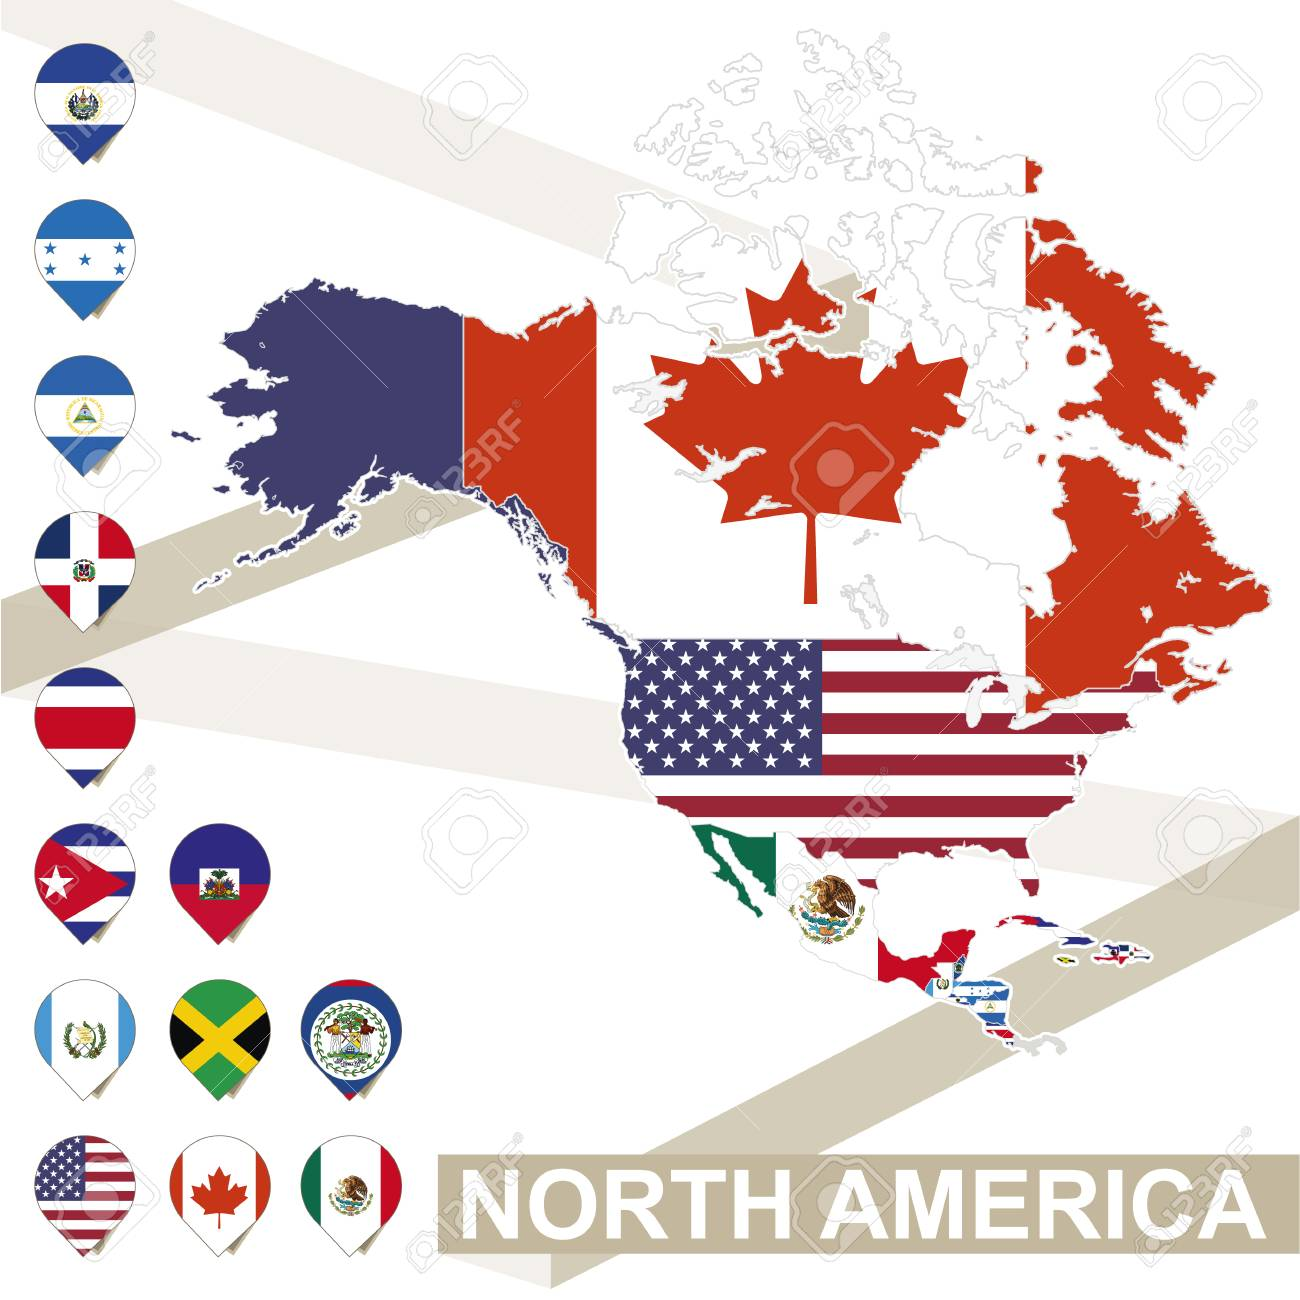 North America Map With Flags, North America Map Colored In With ...